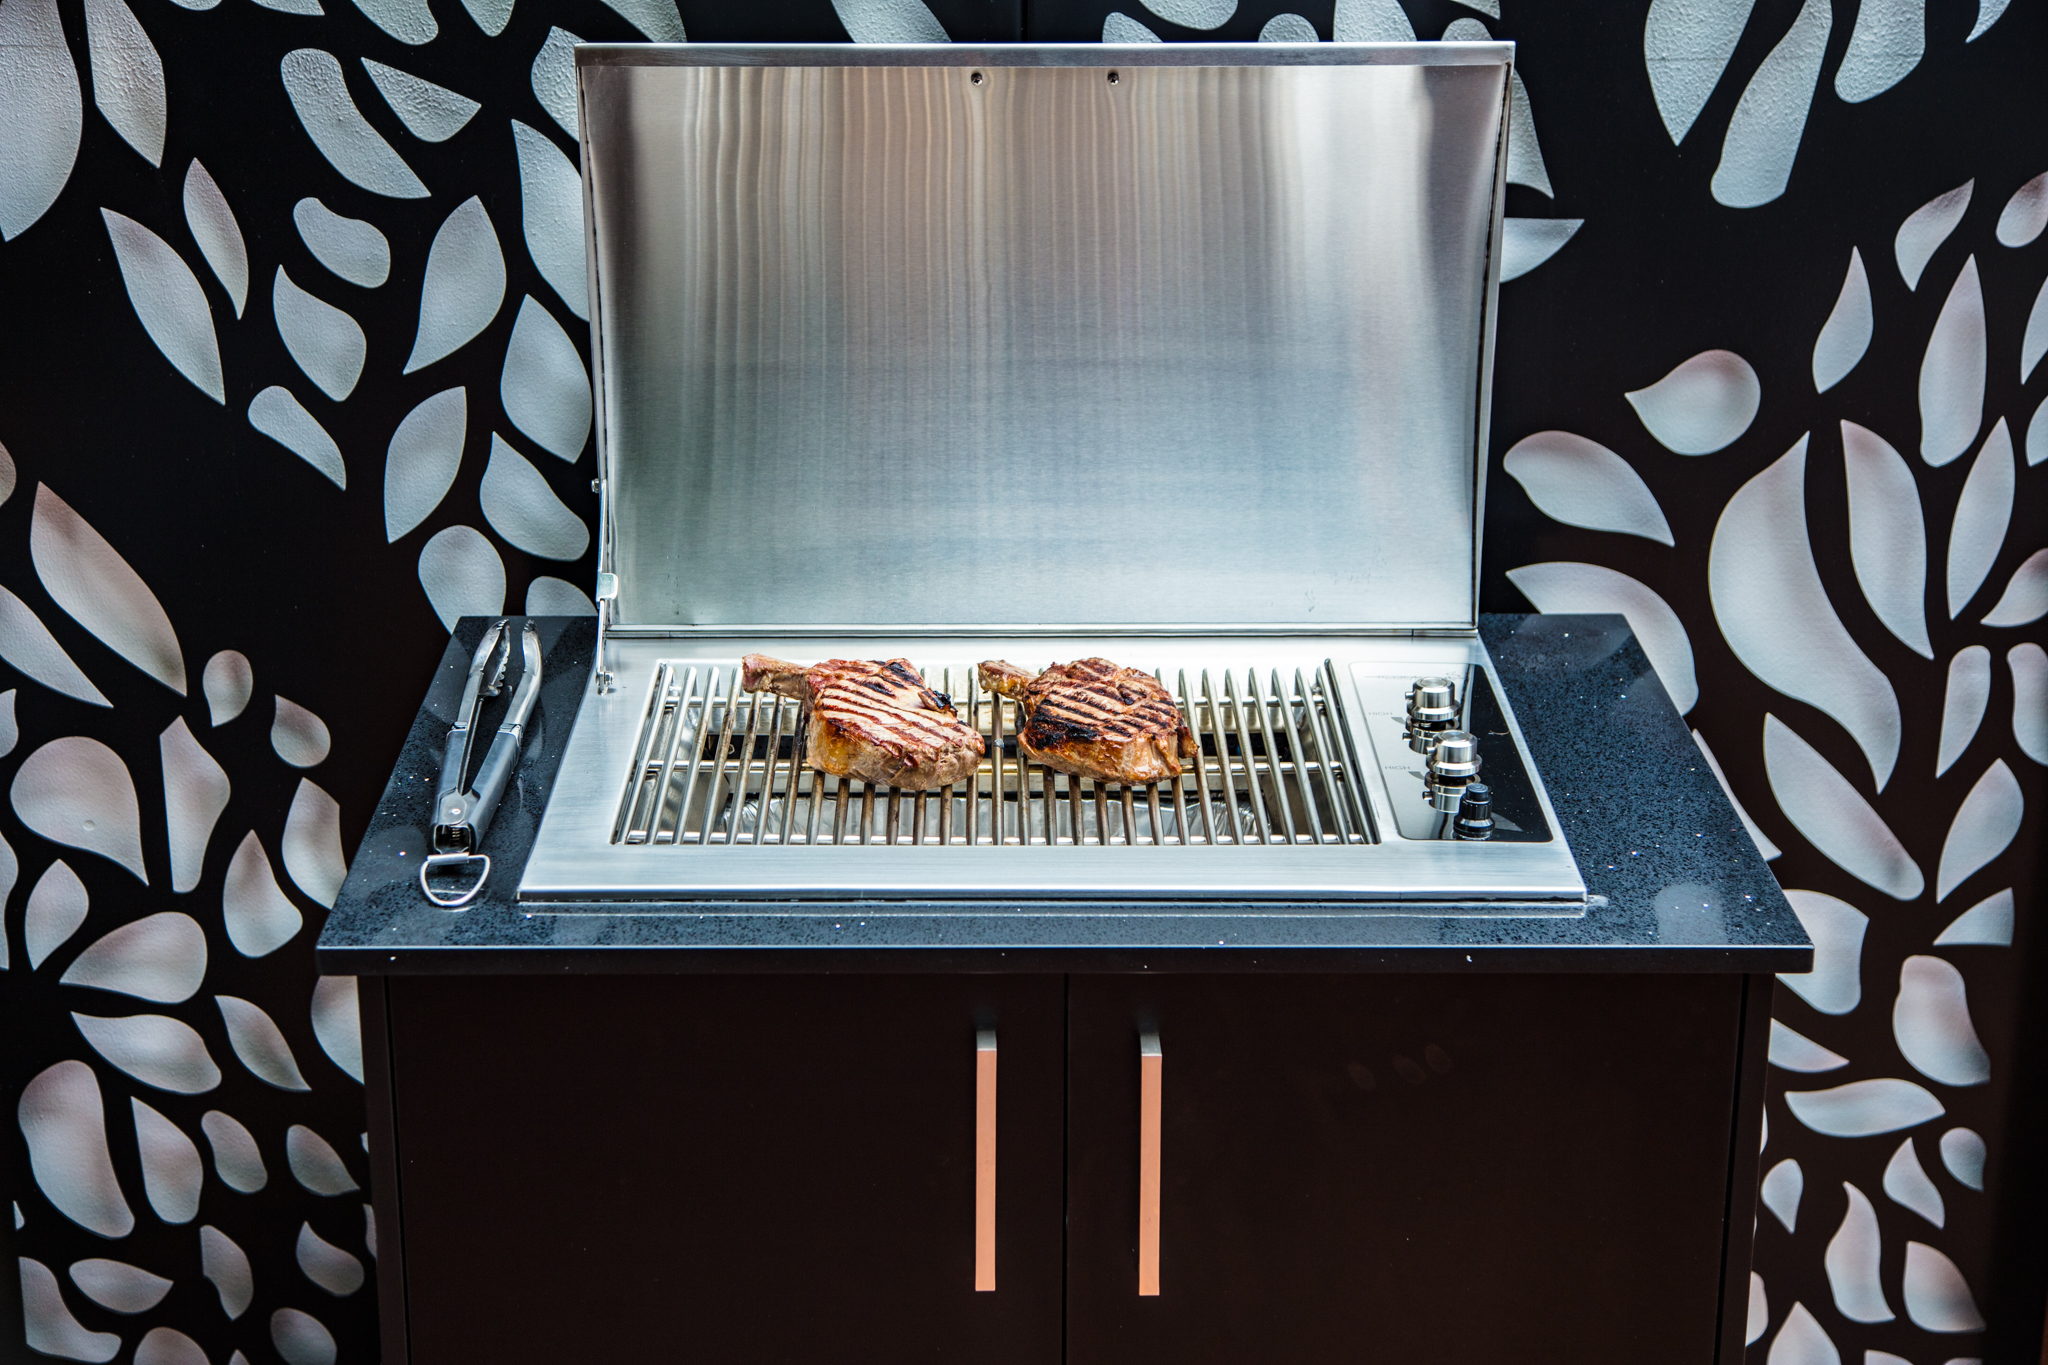 316 marine grade stainless steel Infinity Grill BBQ